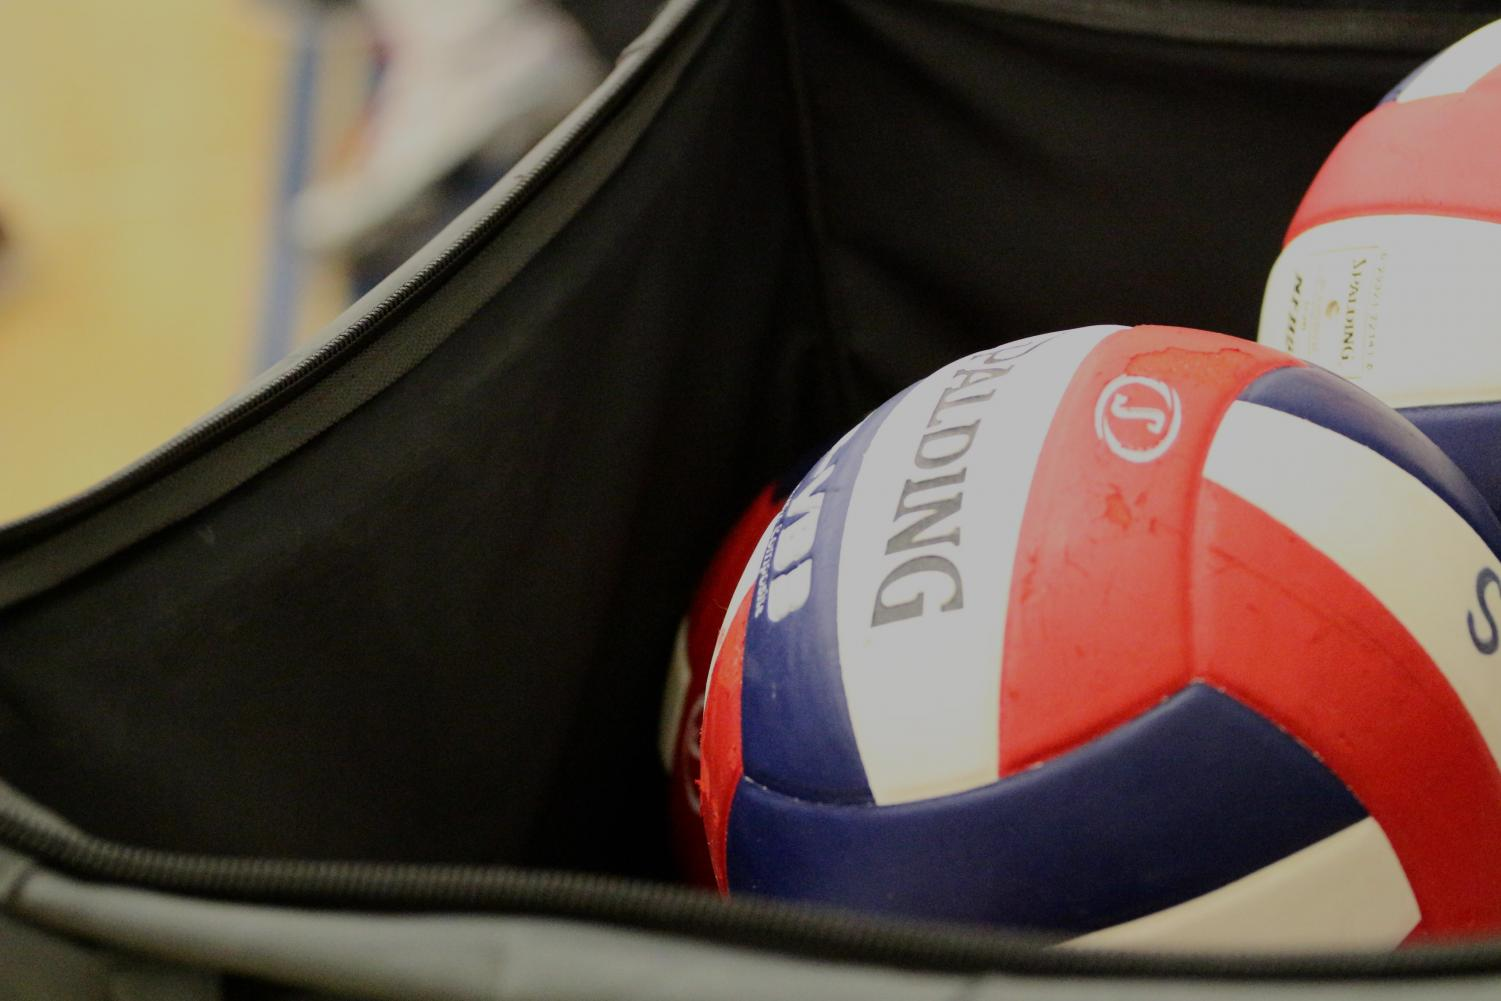 The boys' volleyball game was held in the gym of Cabrillo Middle School.